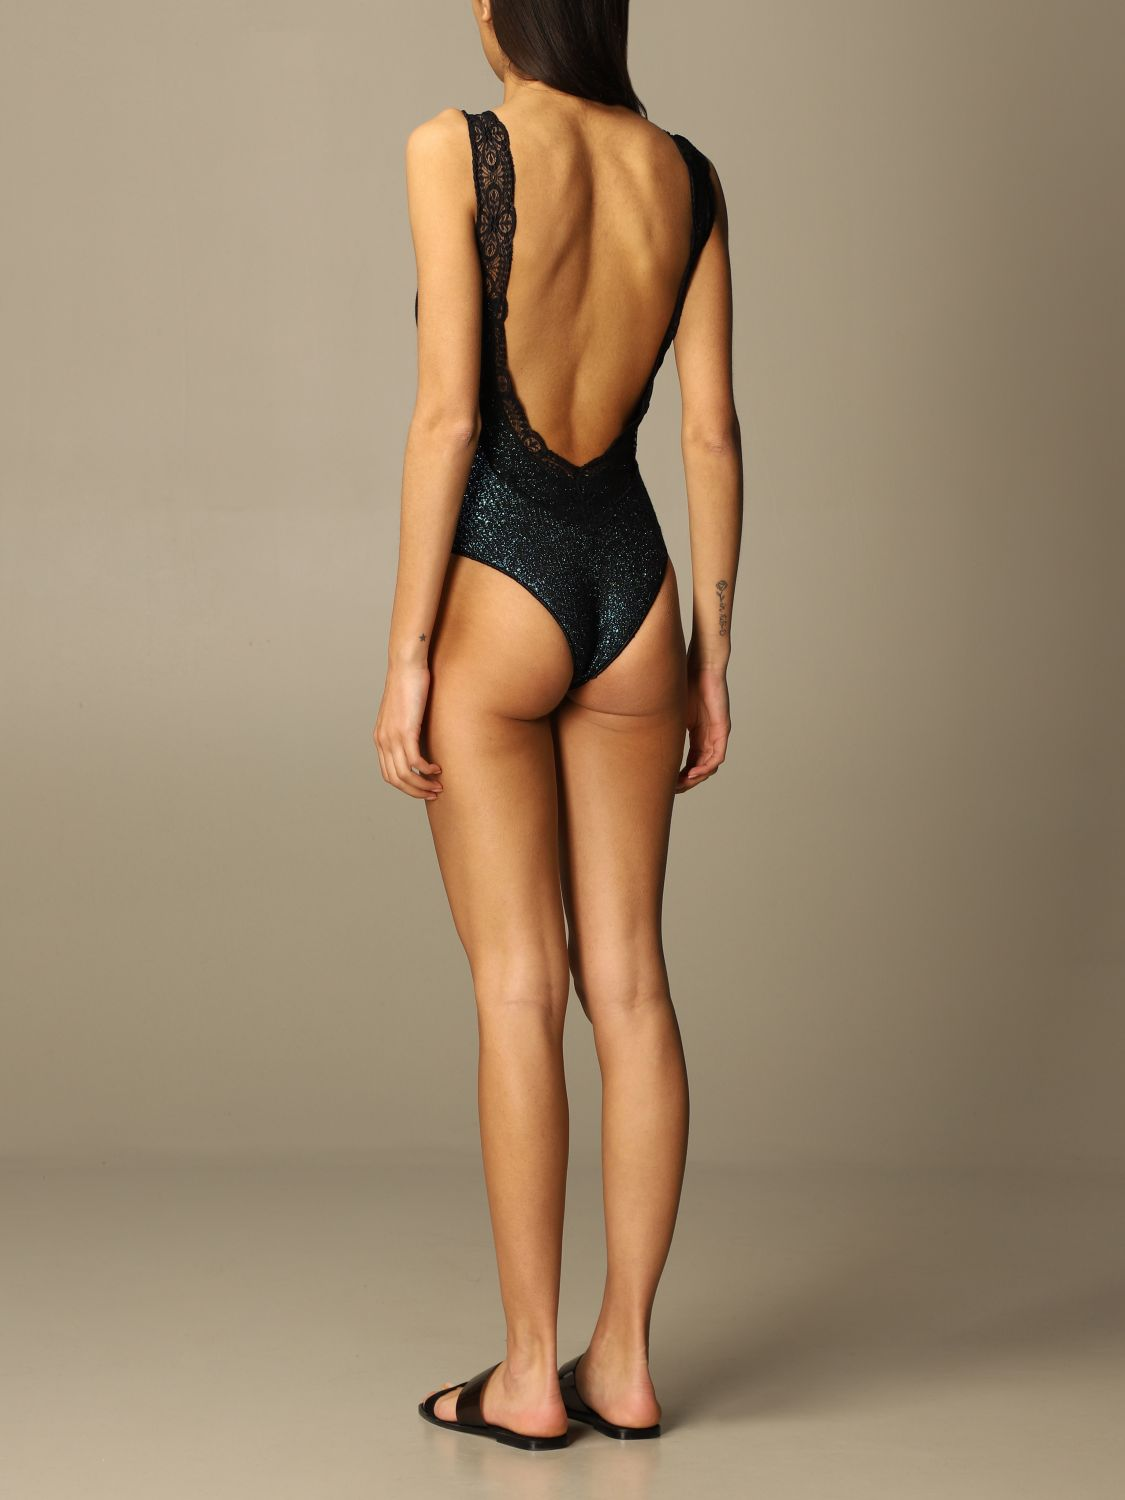 Swimsuit Circus Hotel: Circus Hotel one-piece swimsuit in lurex and lace knitZ black 2